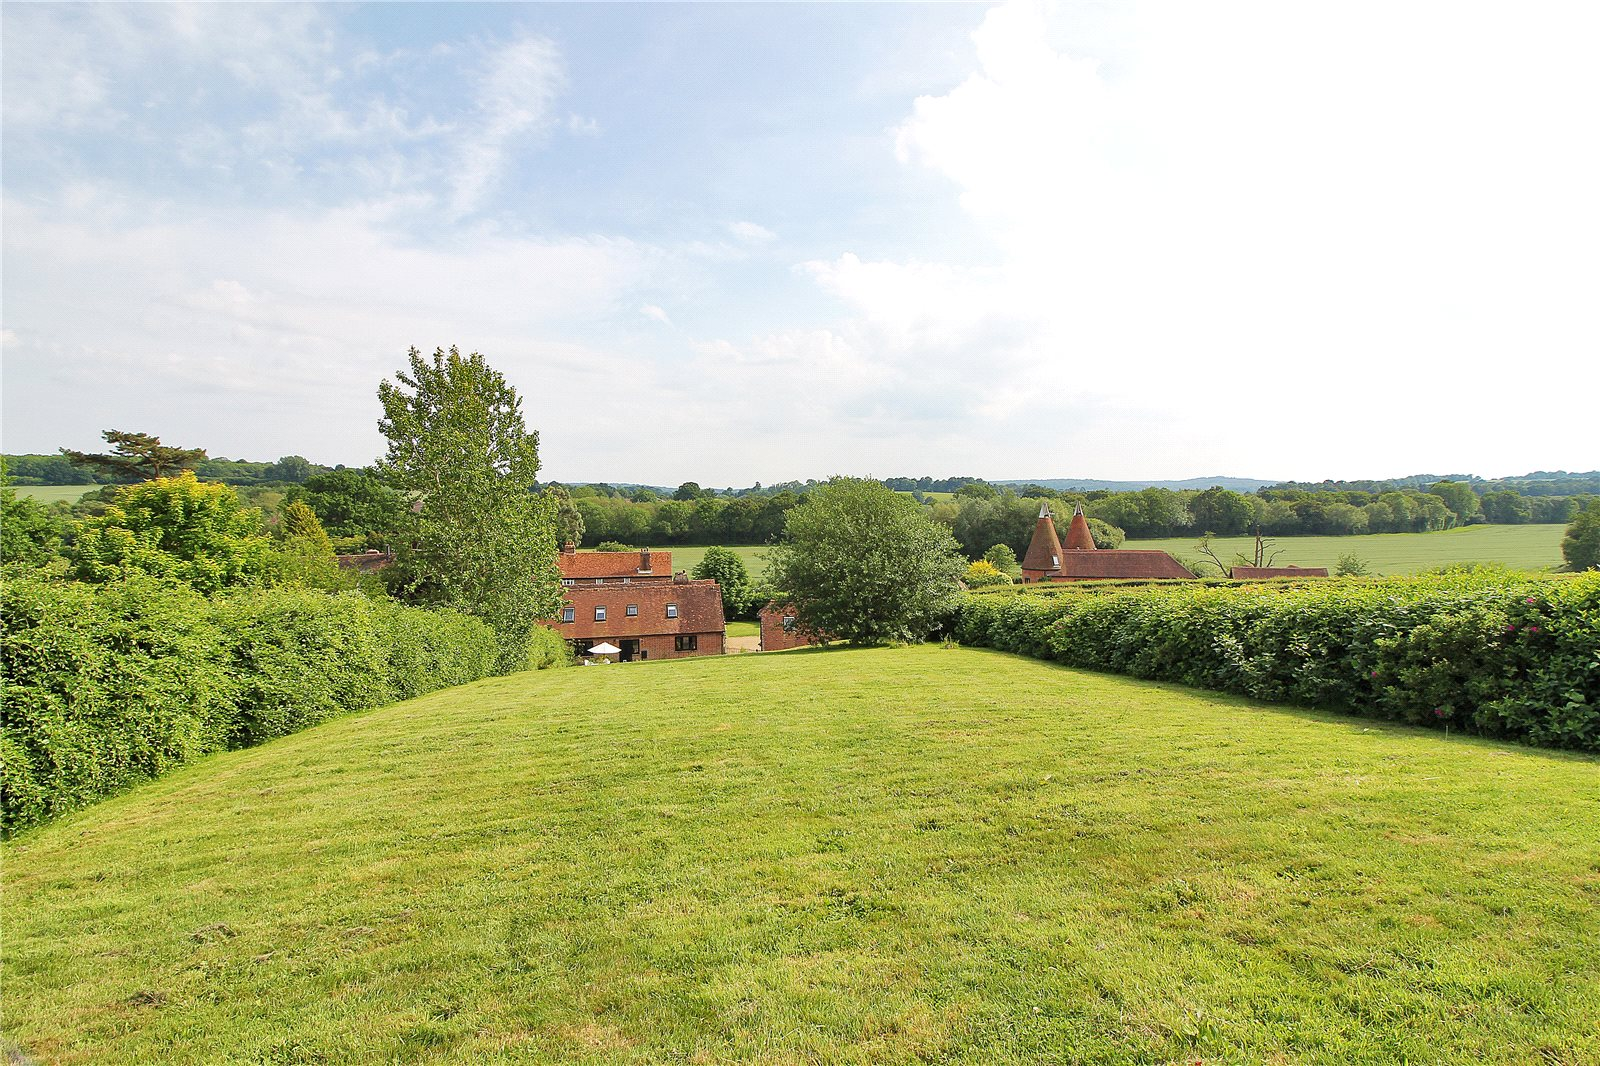 Maison unifamiliale pour l Vente à Summerford Farm, Beech Green Lane, Withyham, East Sussex, TN7 Withyham, Angleterre